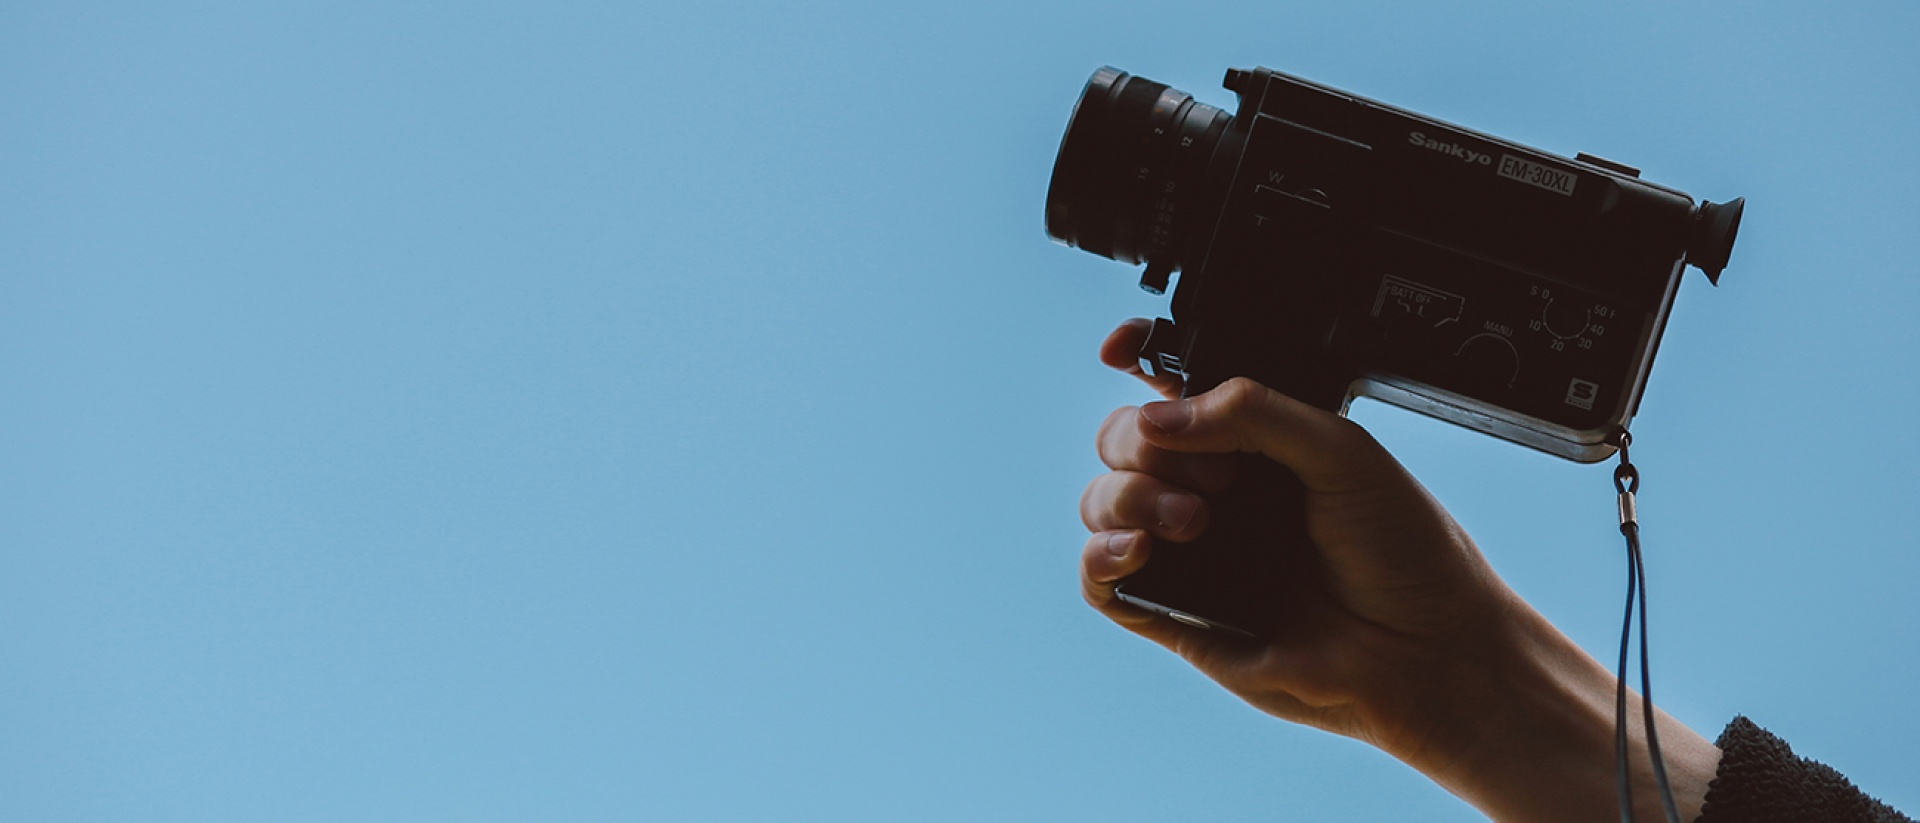 Hand holding a recording camera against a blue background